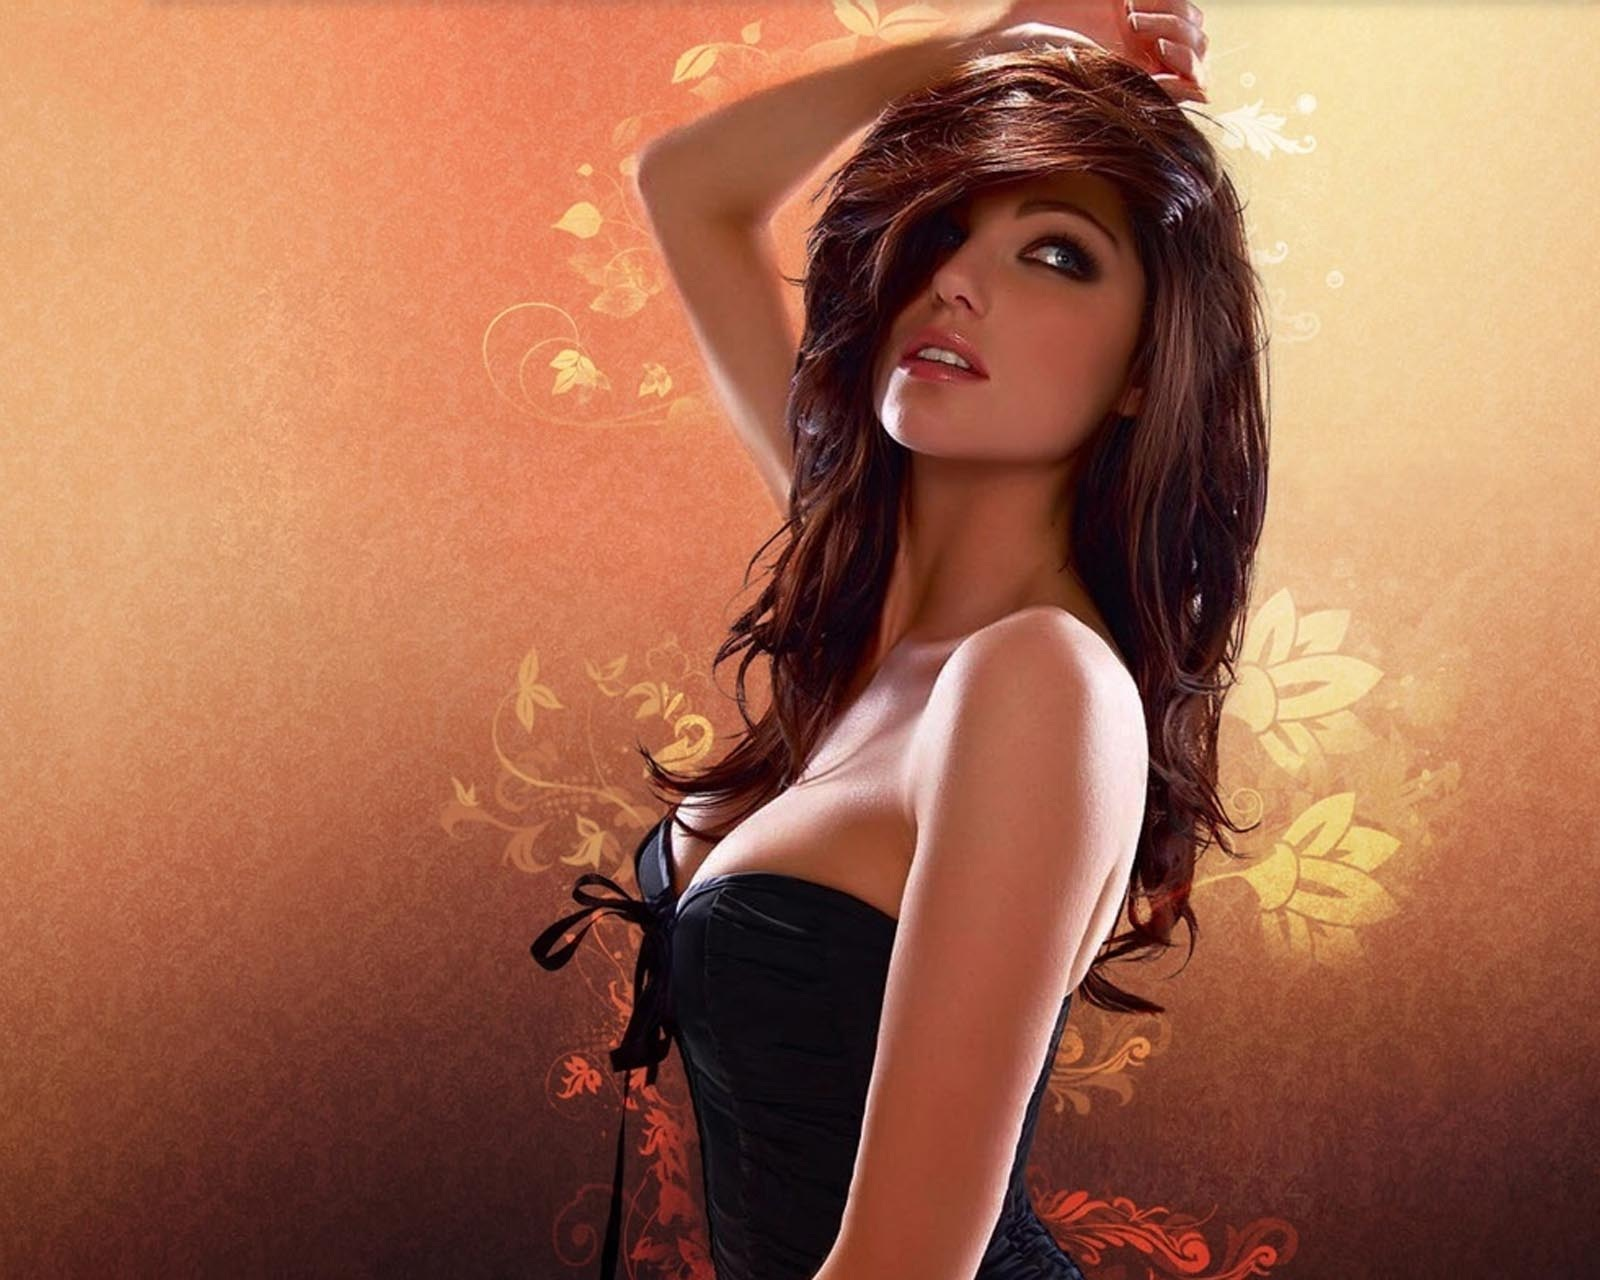 Artistic Girl Wallpaper